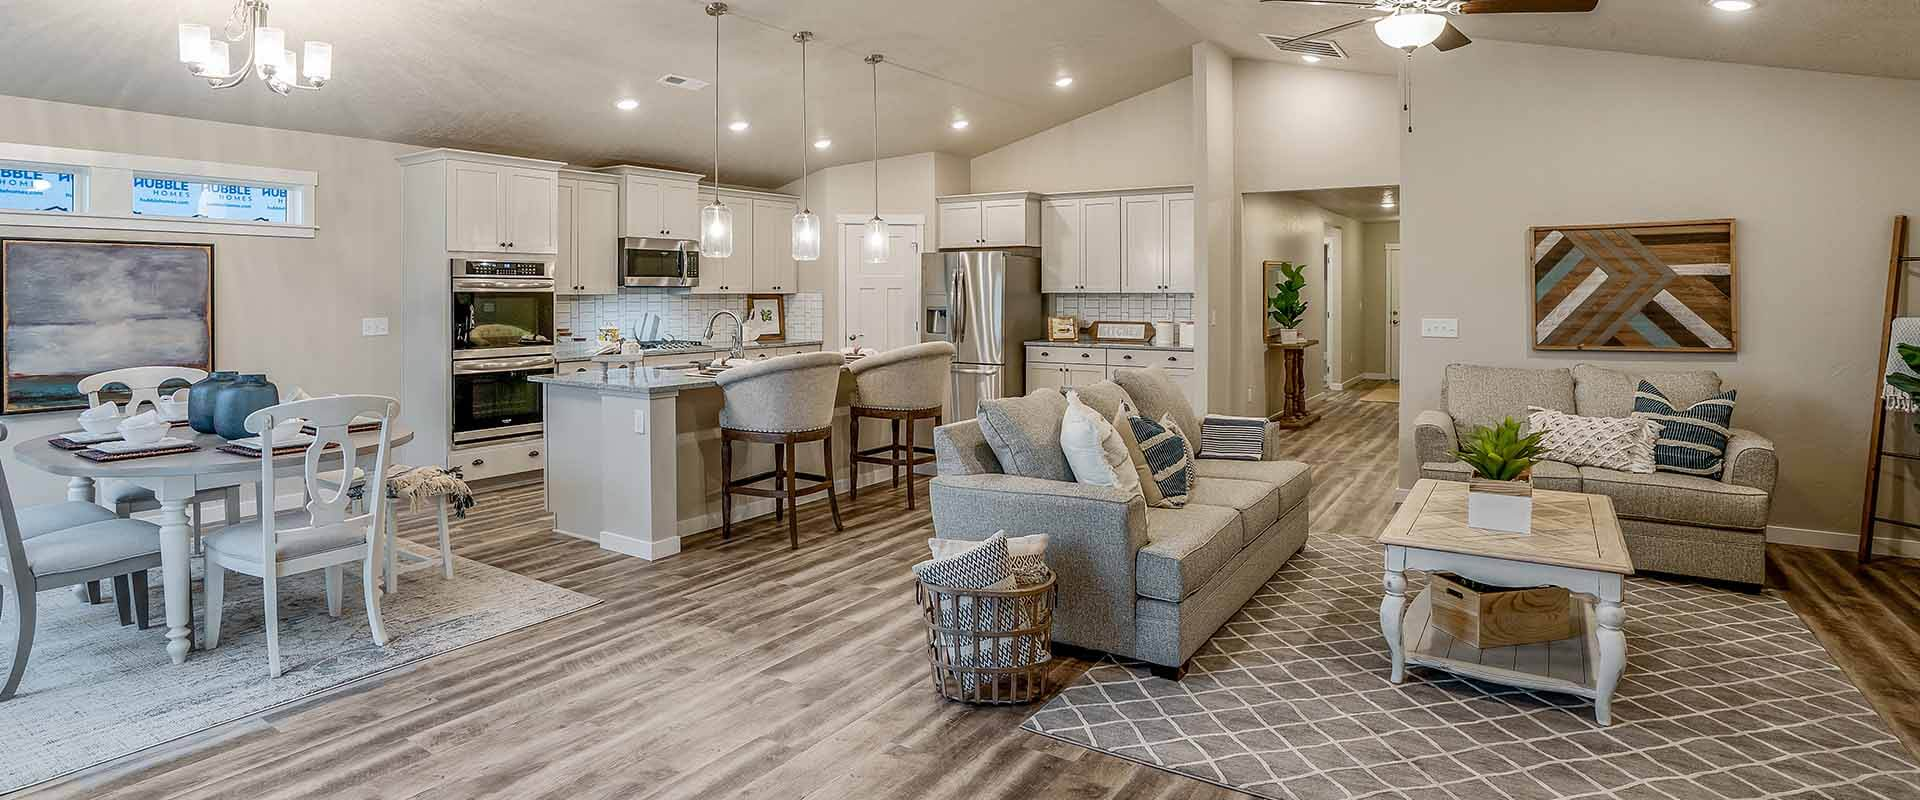 Crestwood_Hubble_Homes_New_Homes_Boise_Great Room1.jpg